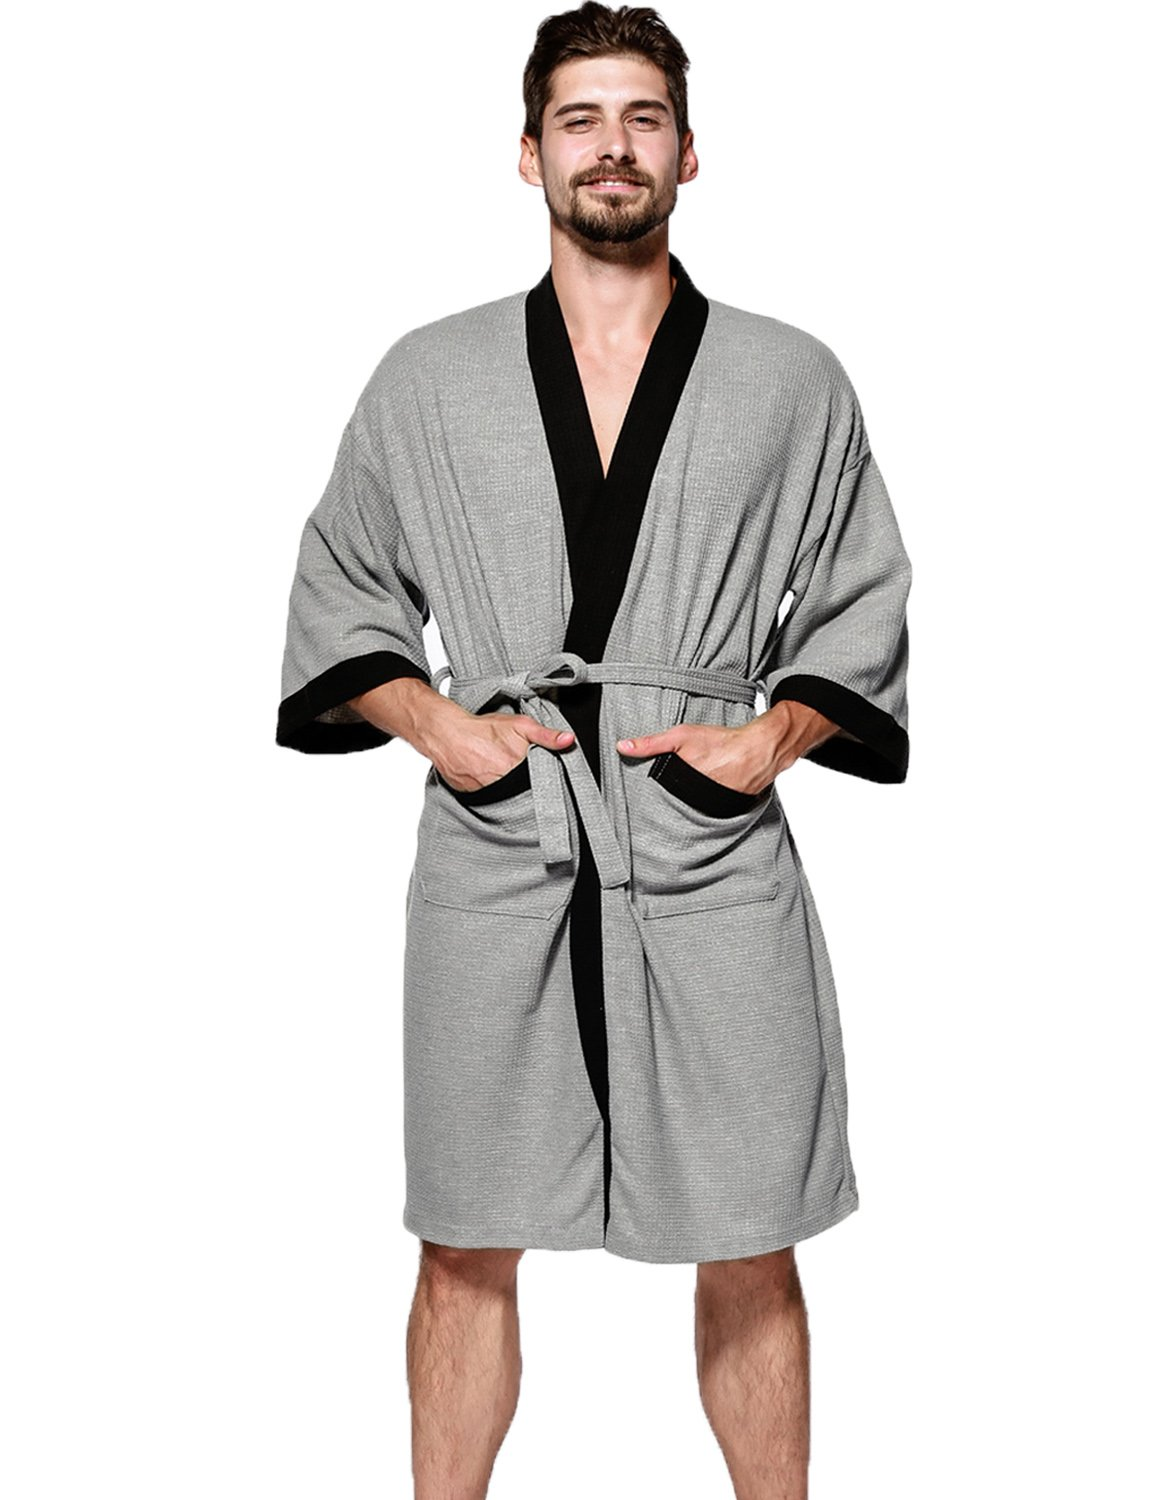 Admireme Men's Waffle Kimono Robe Hotel Spa Robe Cotton Bathrobe Lightweight Nightgowns Sleepwear